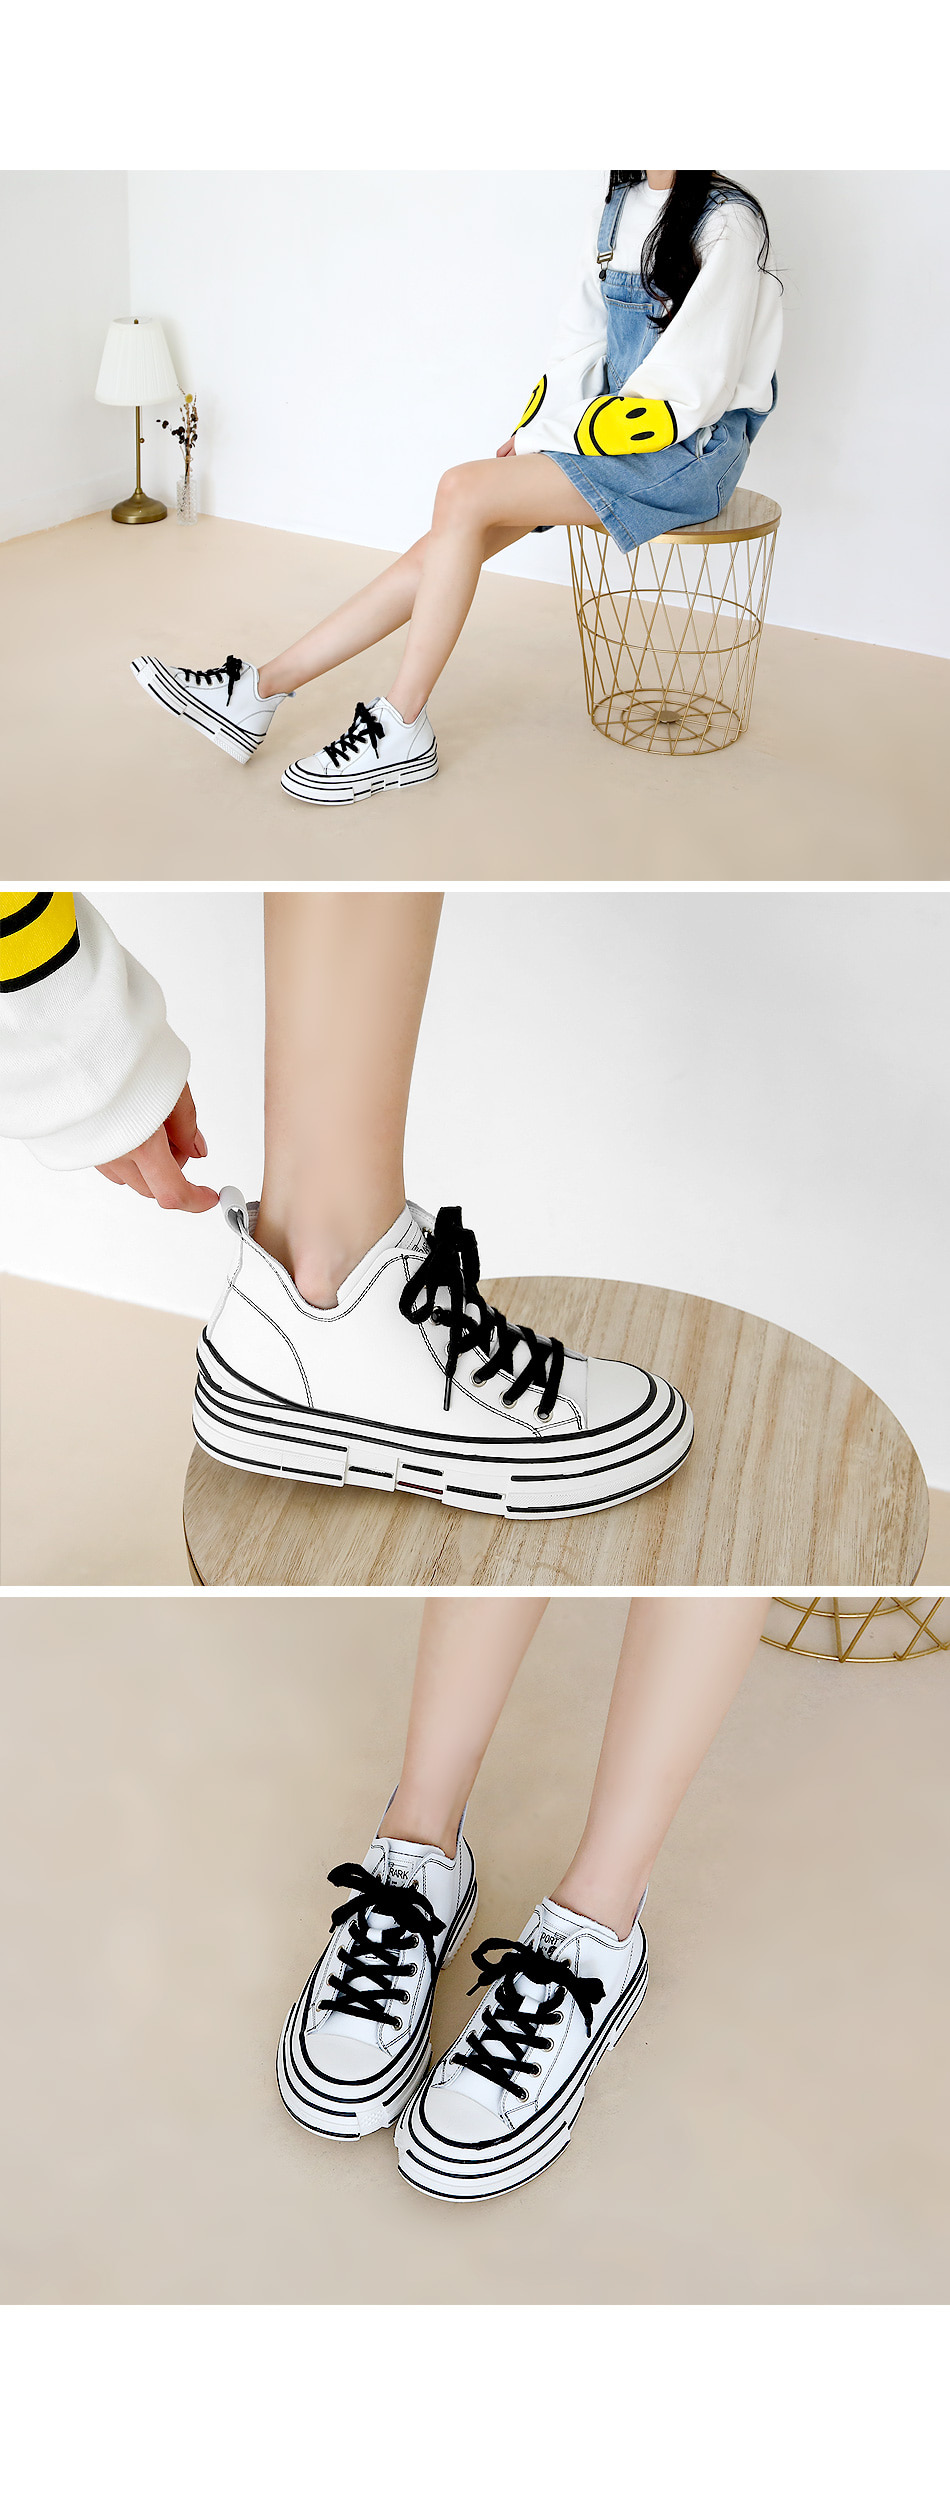 Elite Leather High Top Sneakers 3cm